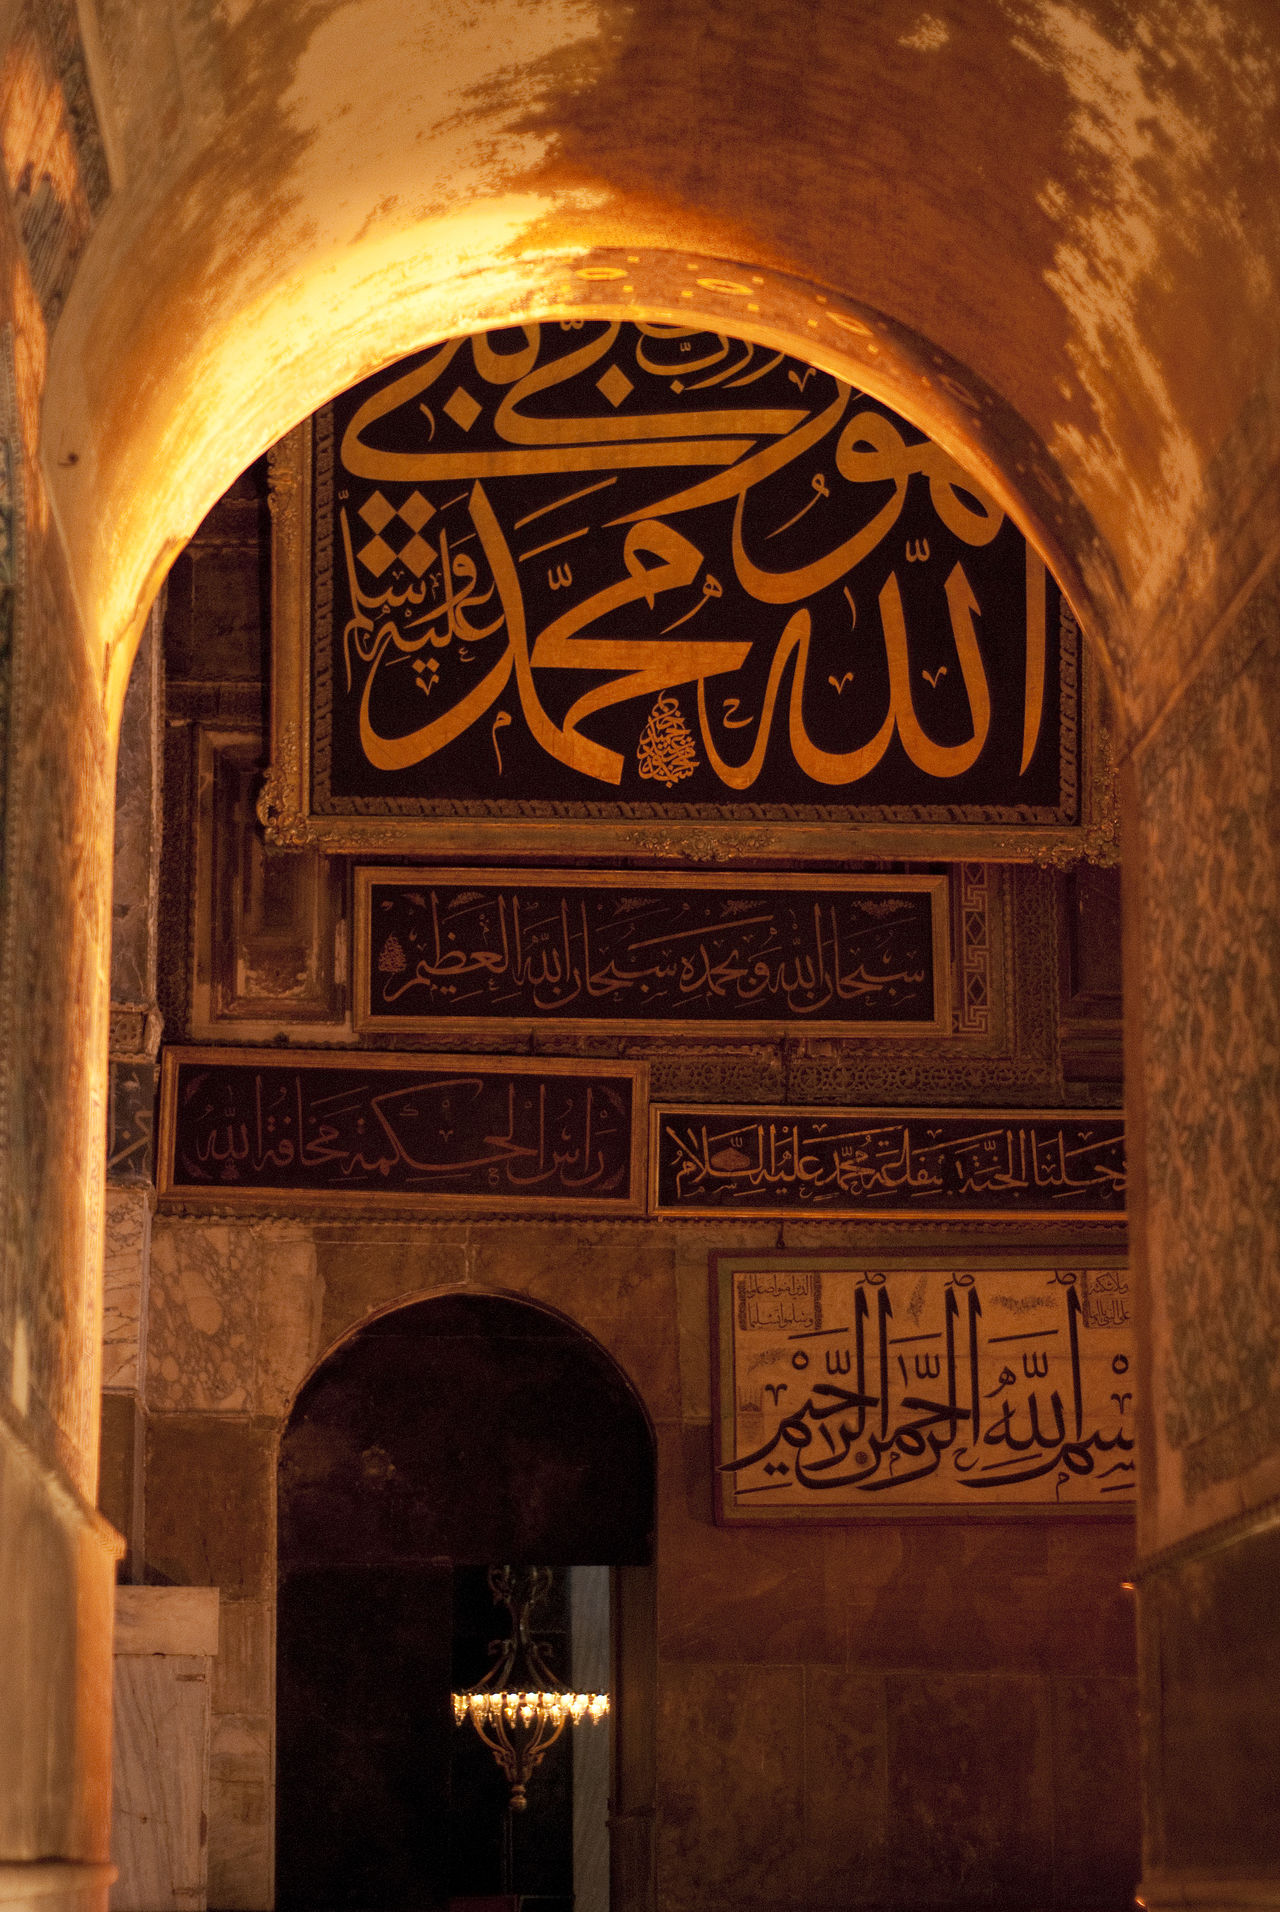 Inside the Hagia Sophia Arch Architecture Built Structure Calligraphy Day Hagia Sophia Indoors  Islamic Architecture Islamic Art Low Angle View Museum No People Place Of Worship Religion Sacred Places Travel Destinations